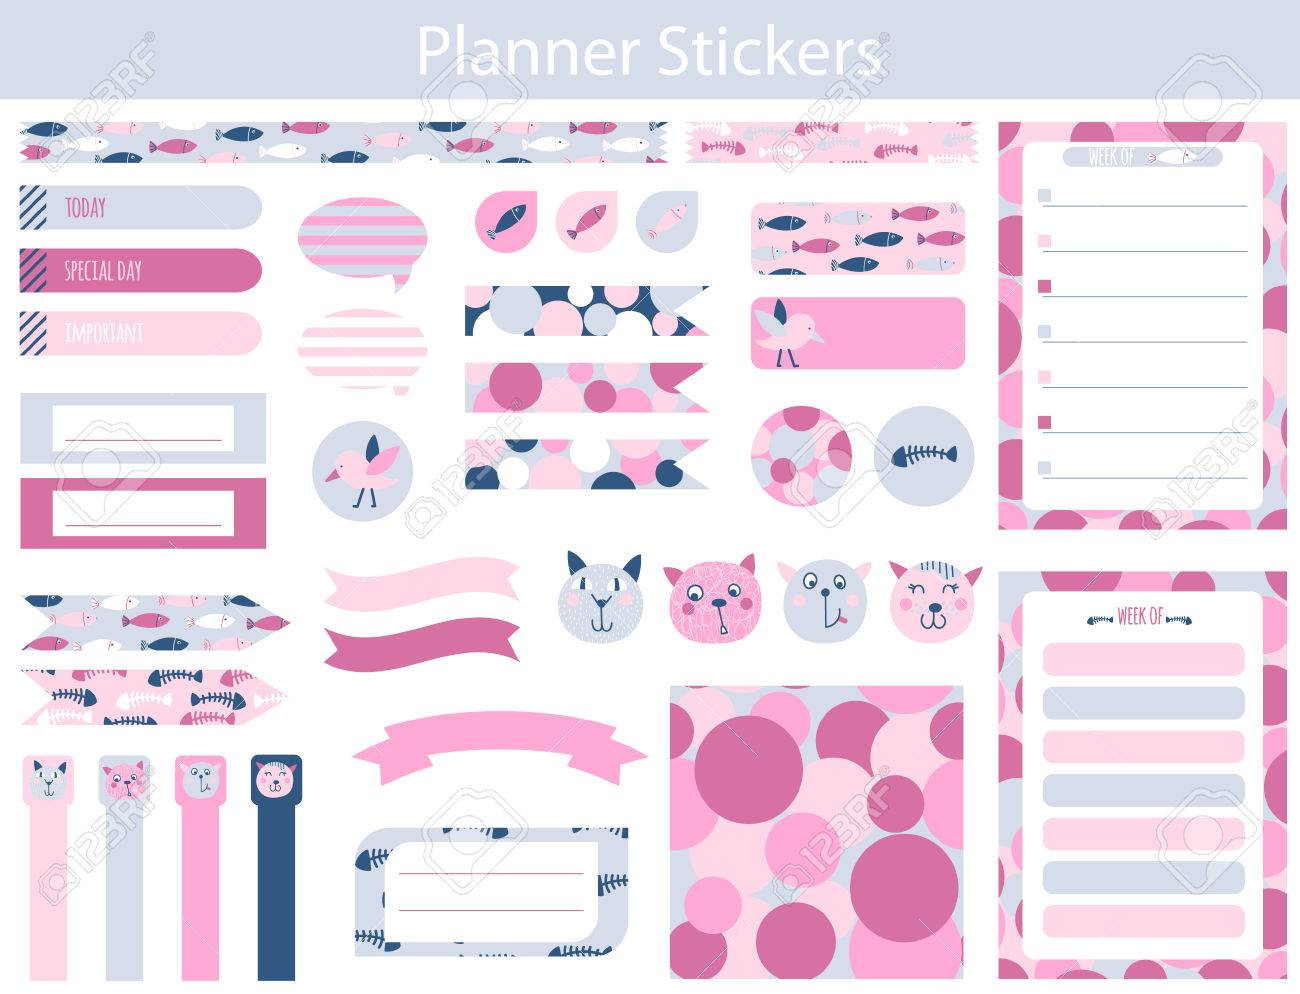 collection of planner stickers with cute cats, fish and fish